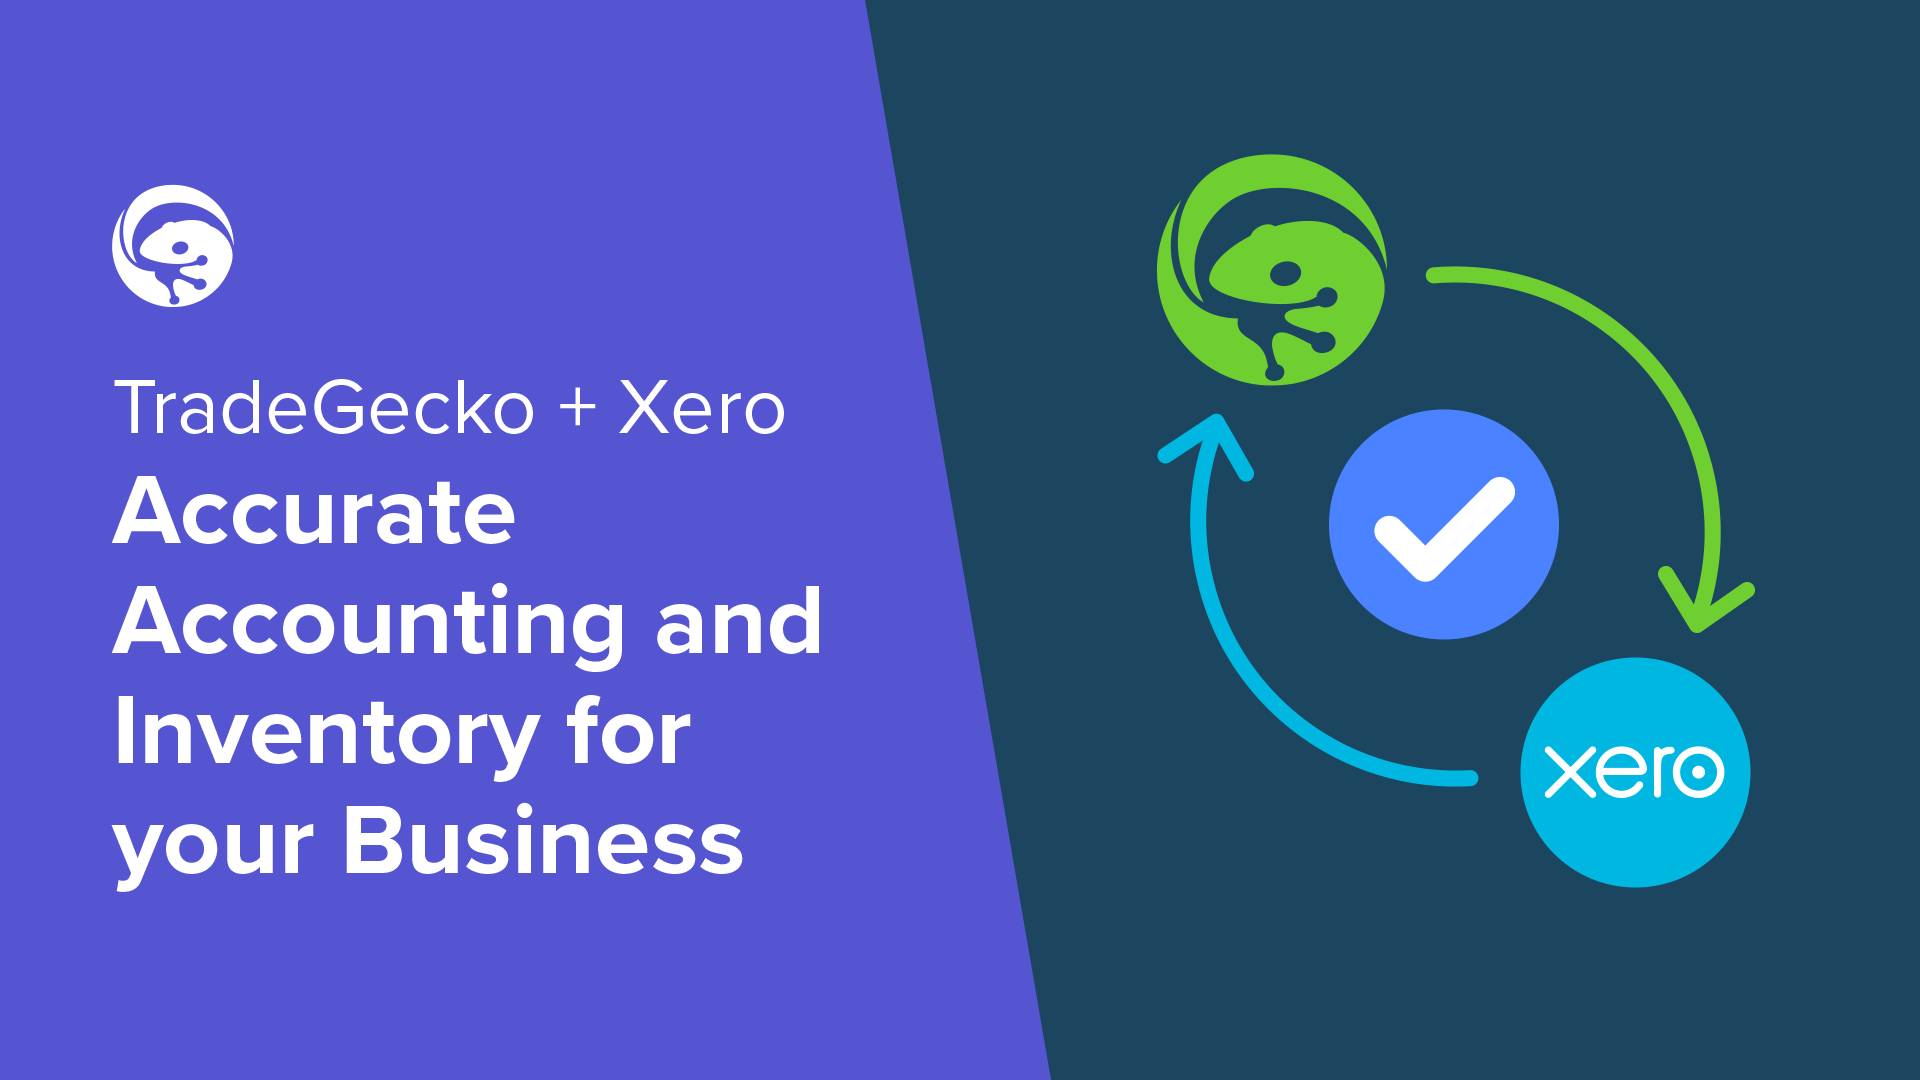 tradegecko-xero-video-thumbnail-2019